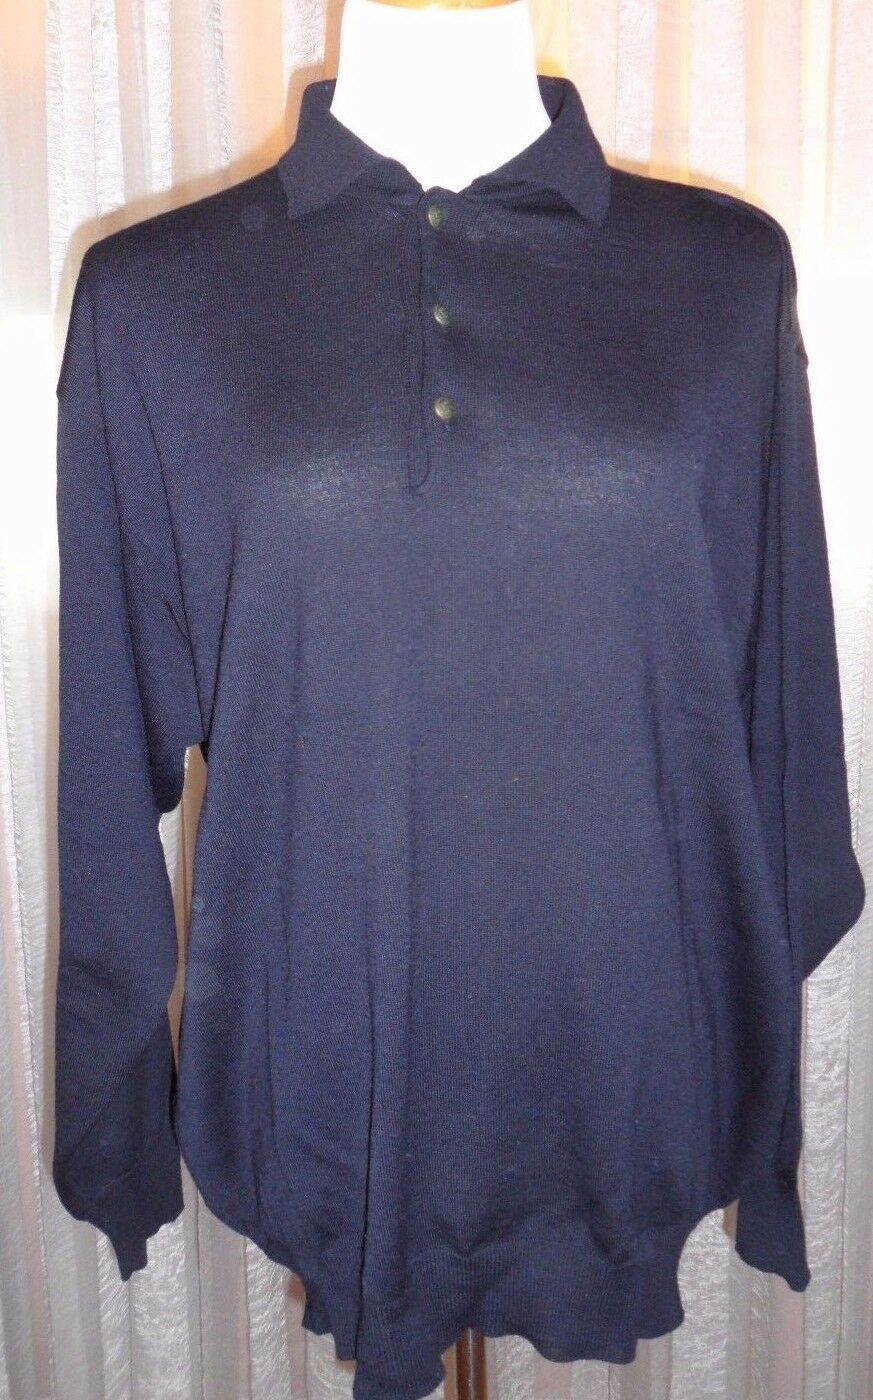 V2 BY VERSACE herren POLO SWEATER SHIRT, PERFECT FIT, MINT CONDITION, L